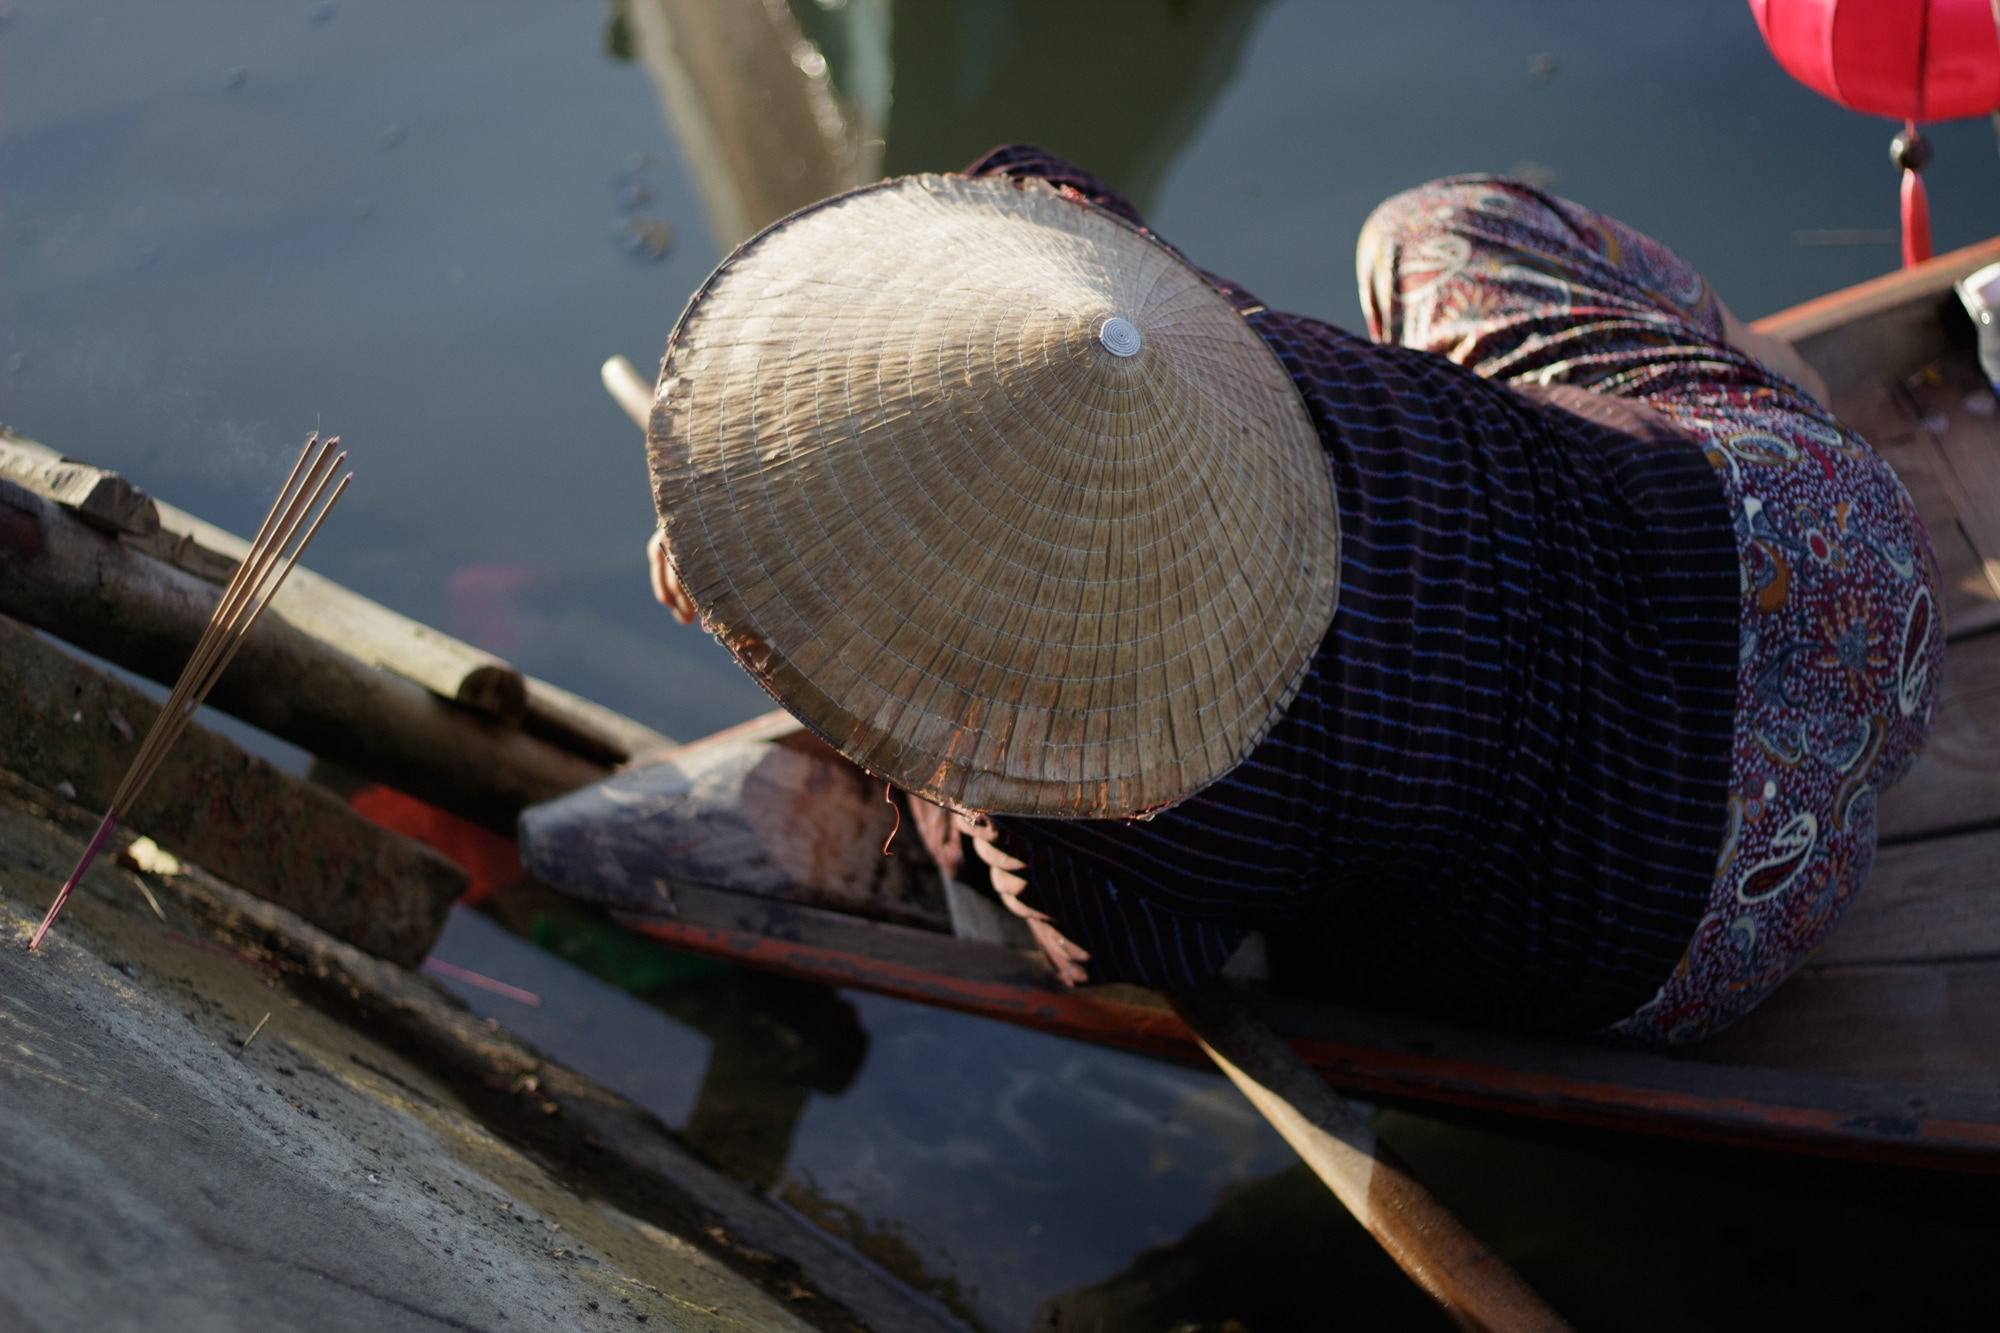 A boat woman photographed as she lights incense sticks.